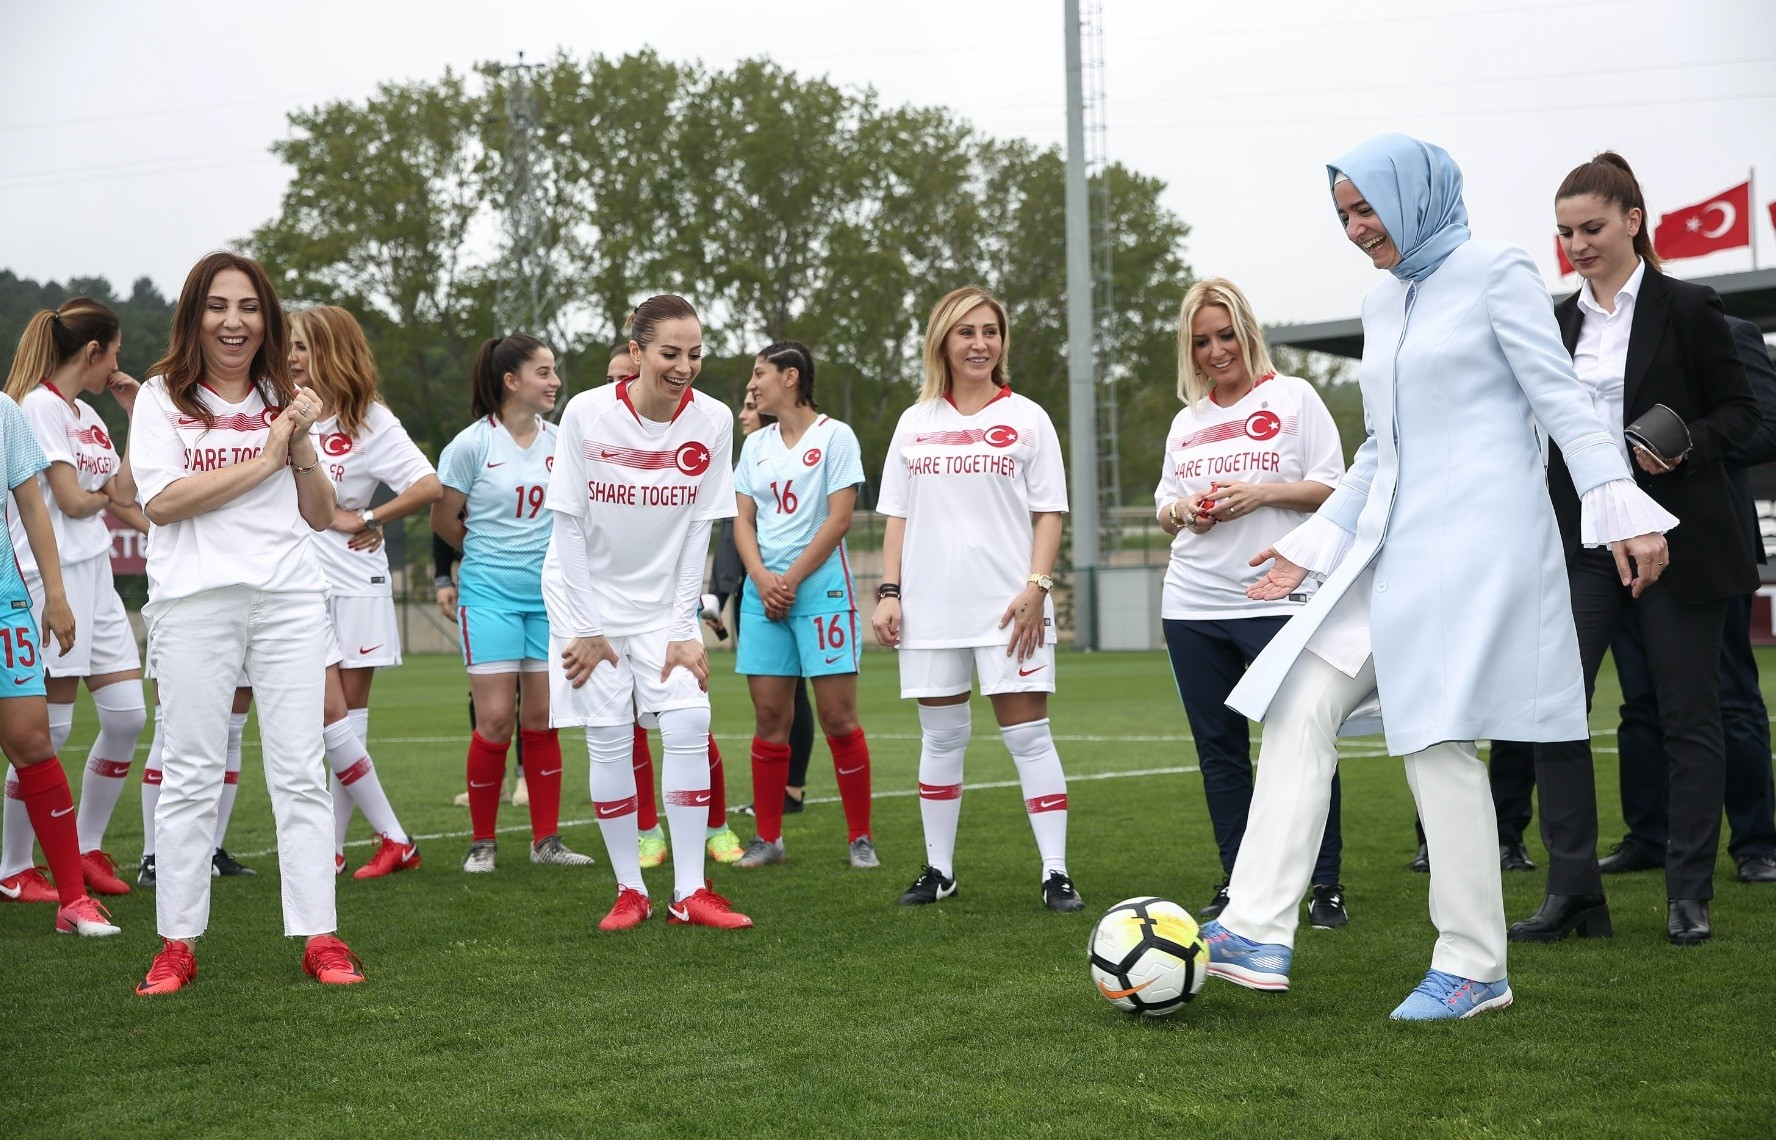 Family and Social Affairs Minister Fatma Betu00fcl Sayan Kaya kicked off the match between the womenu2019s national football team and a team of celebrities, May 6.